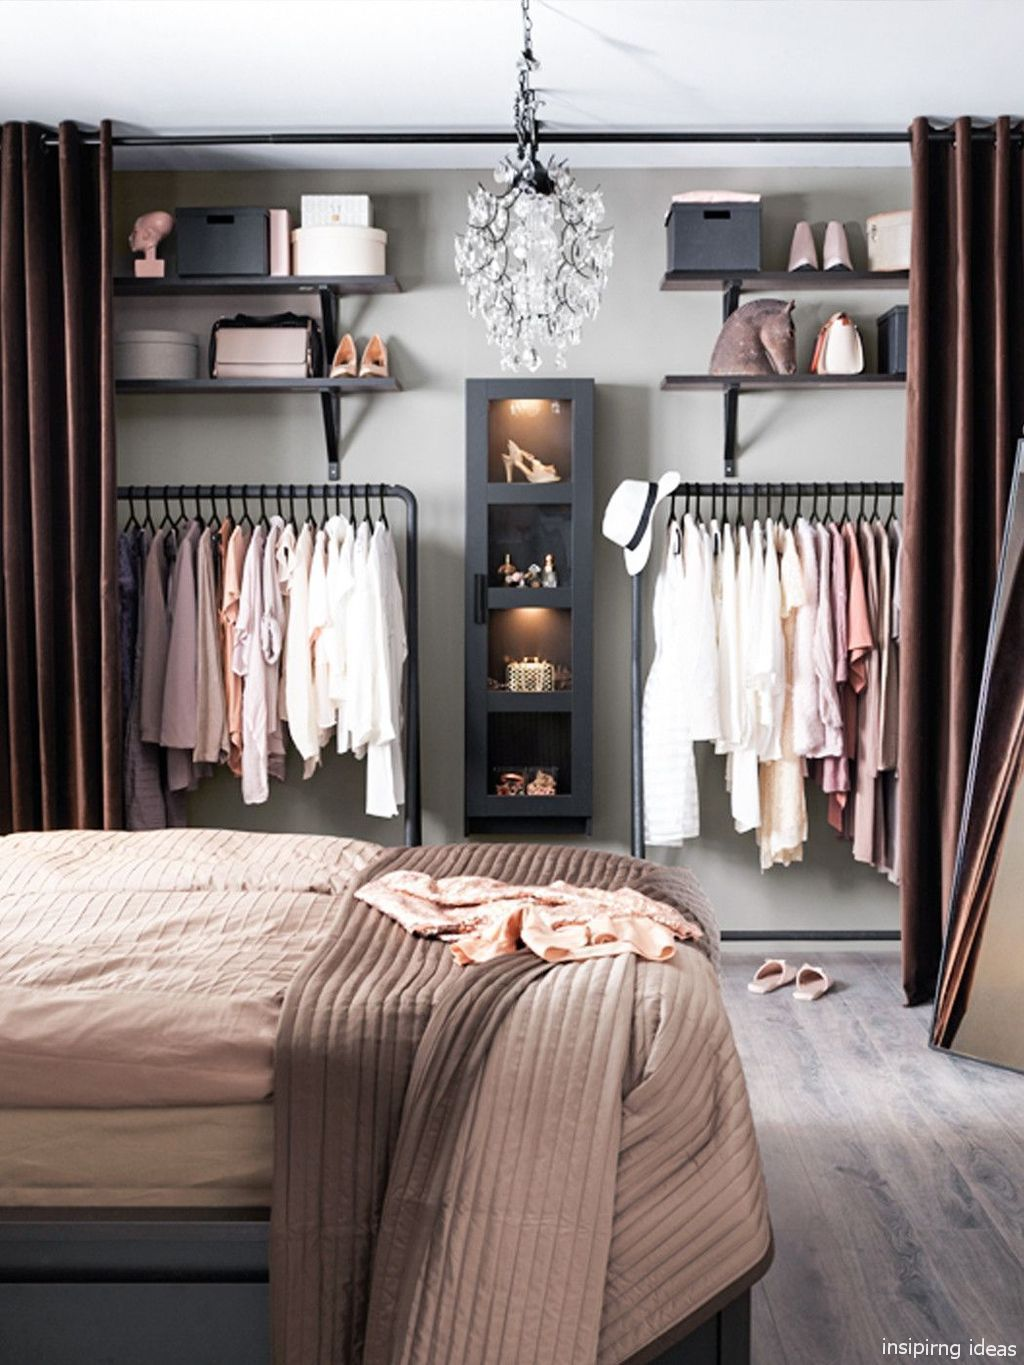 89 Clever DIY Closet Design Ideas And Organization   Roomaniac.com